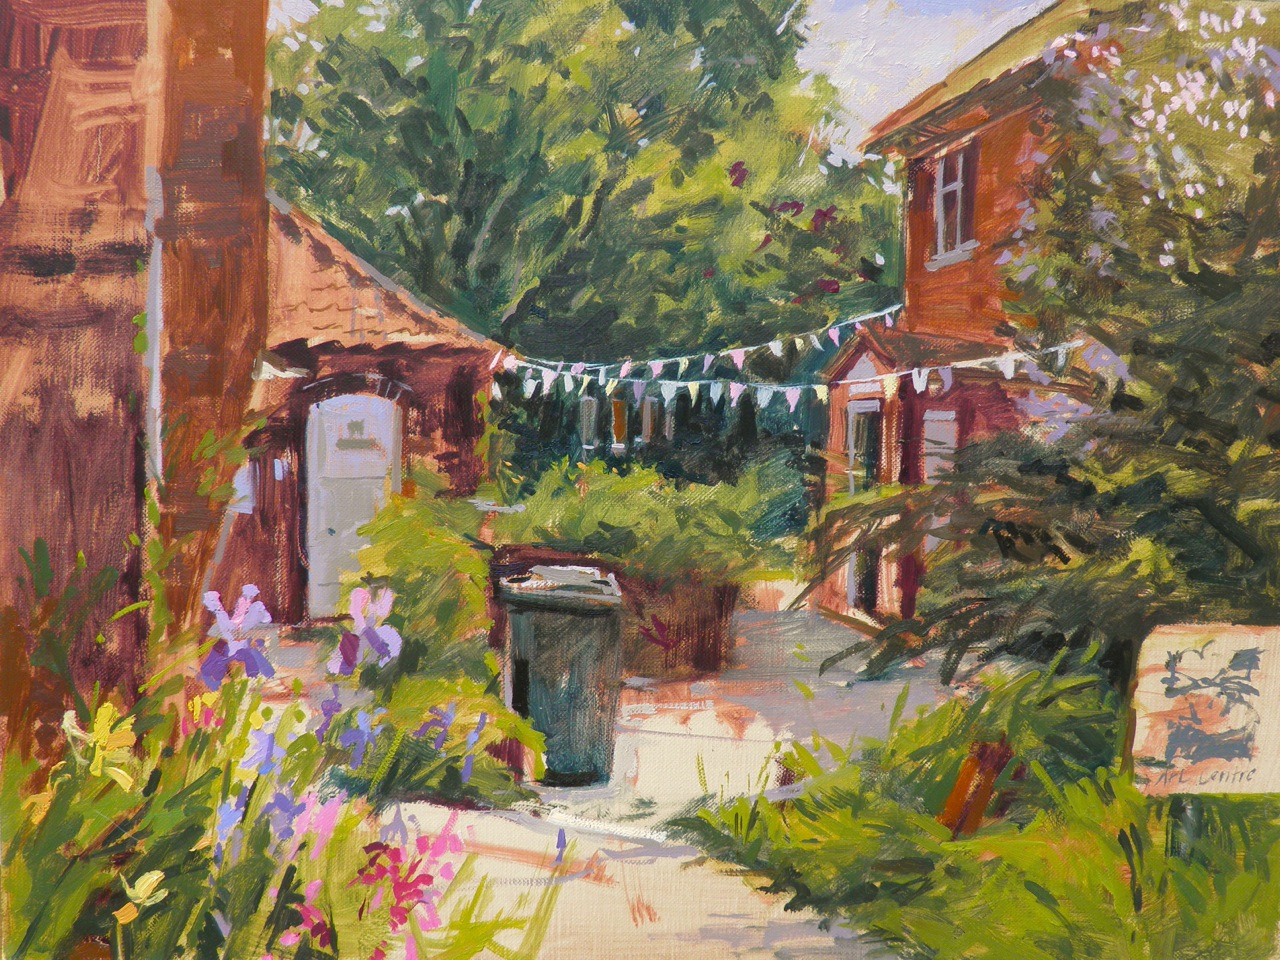 Plein air painting demo at Patchings Festival 2013